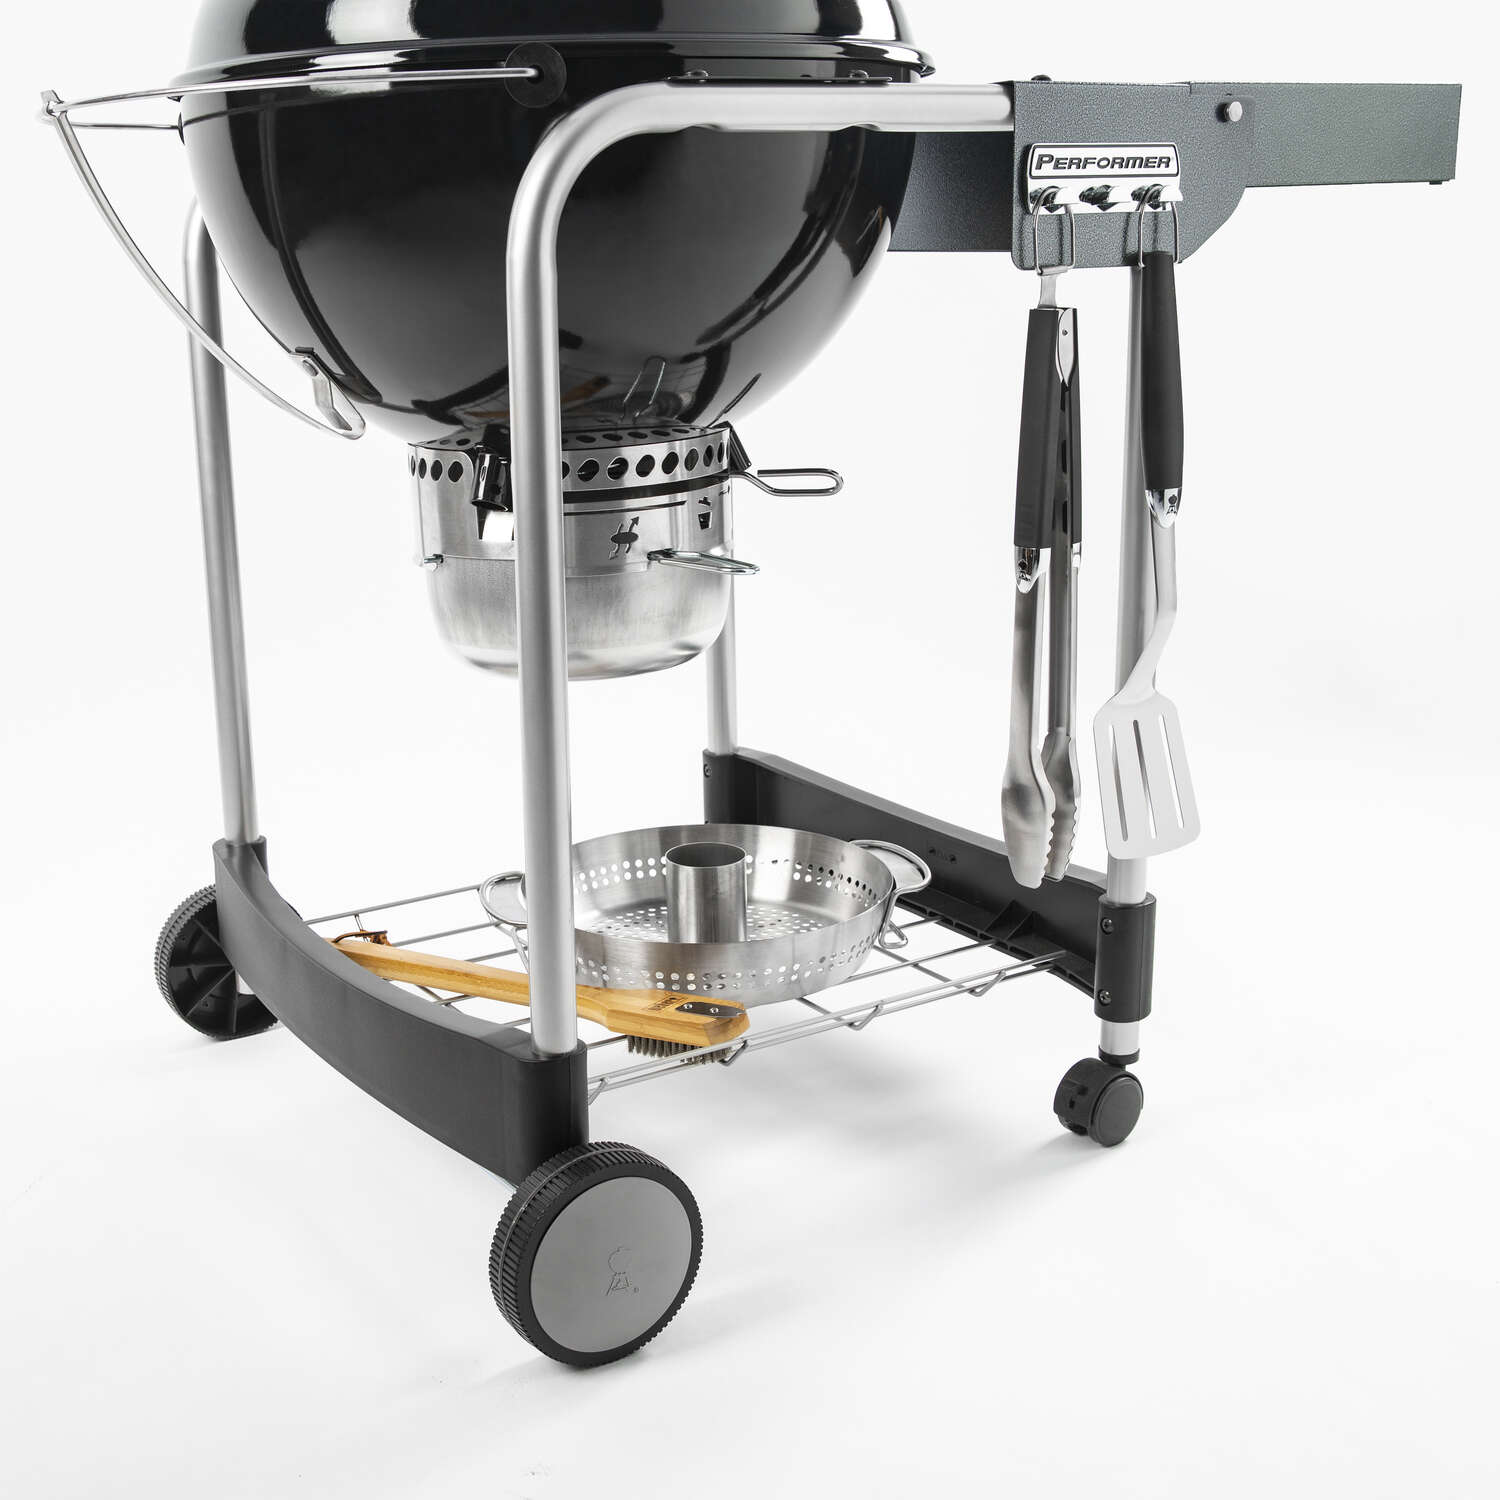 Weber  Performer Charcoal  22 in. W Black  Kettle Grill  Charcoal